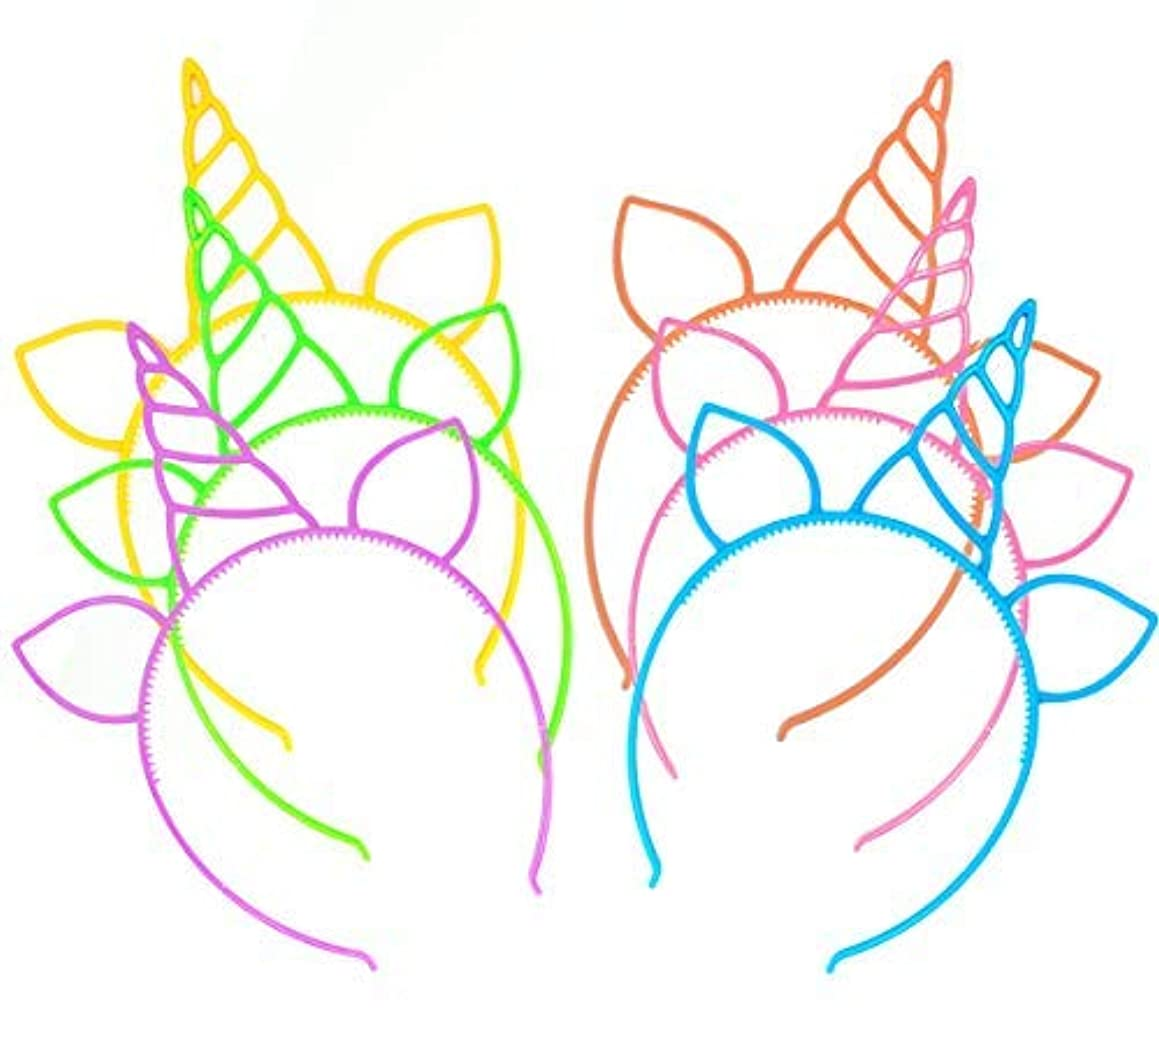 動力学熟練した側面12 Pcs Unicorn Headbands Theme Birthday Party Favor Supplies Gift Costume [並行輸入品]